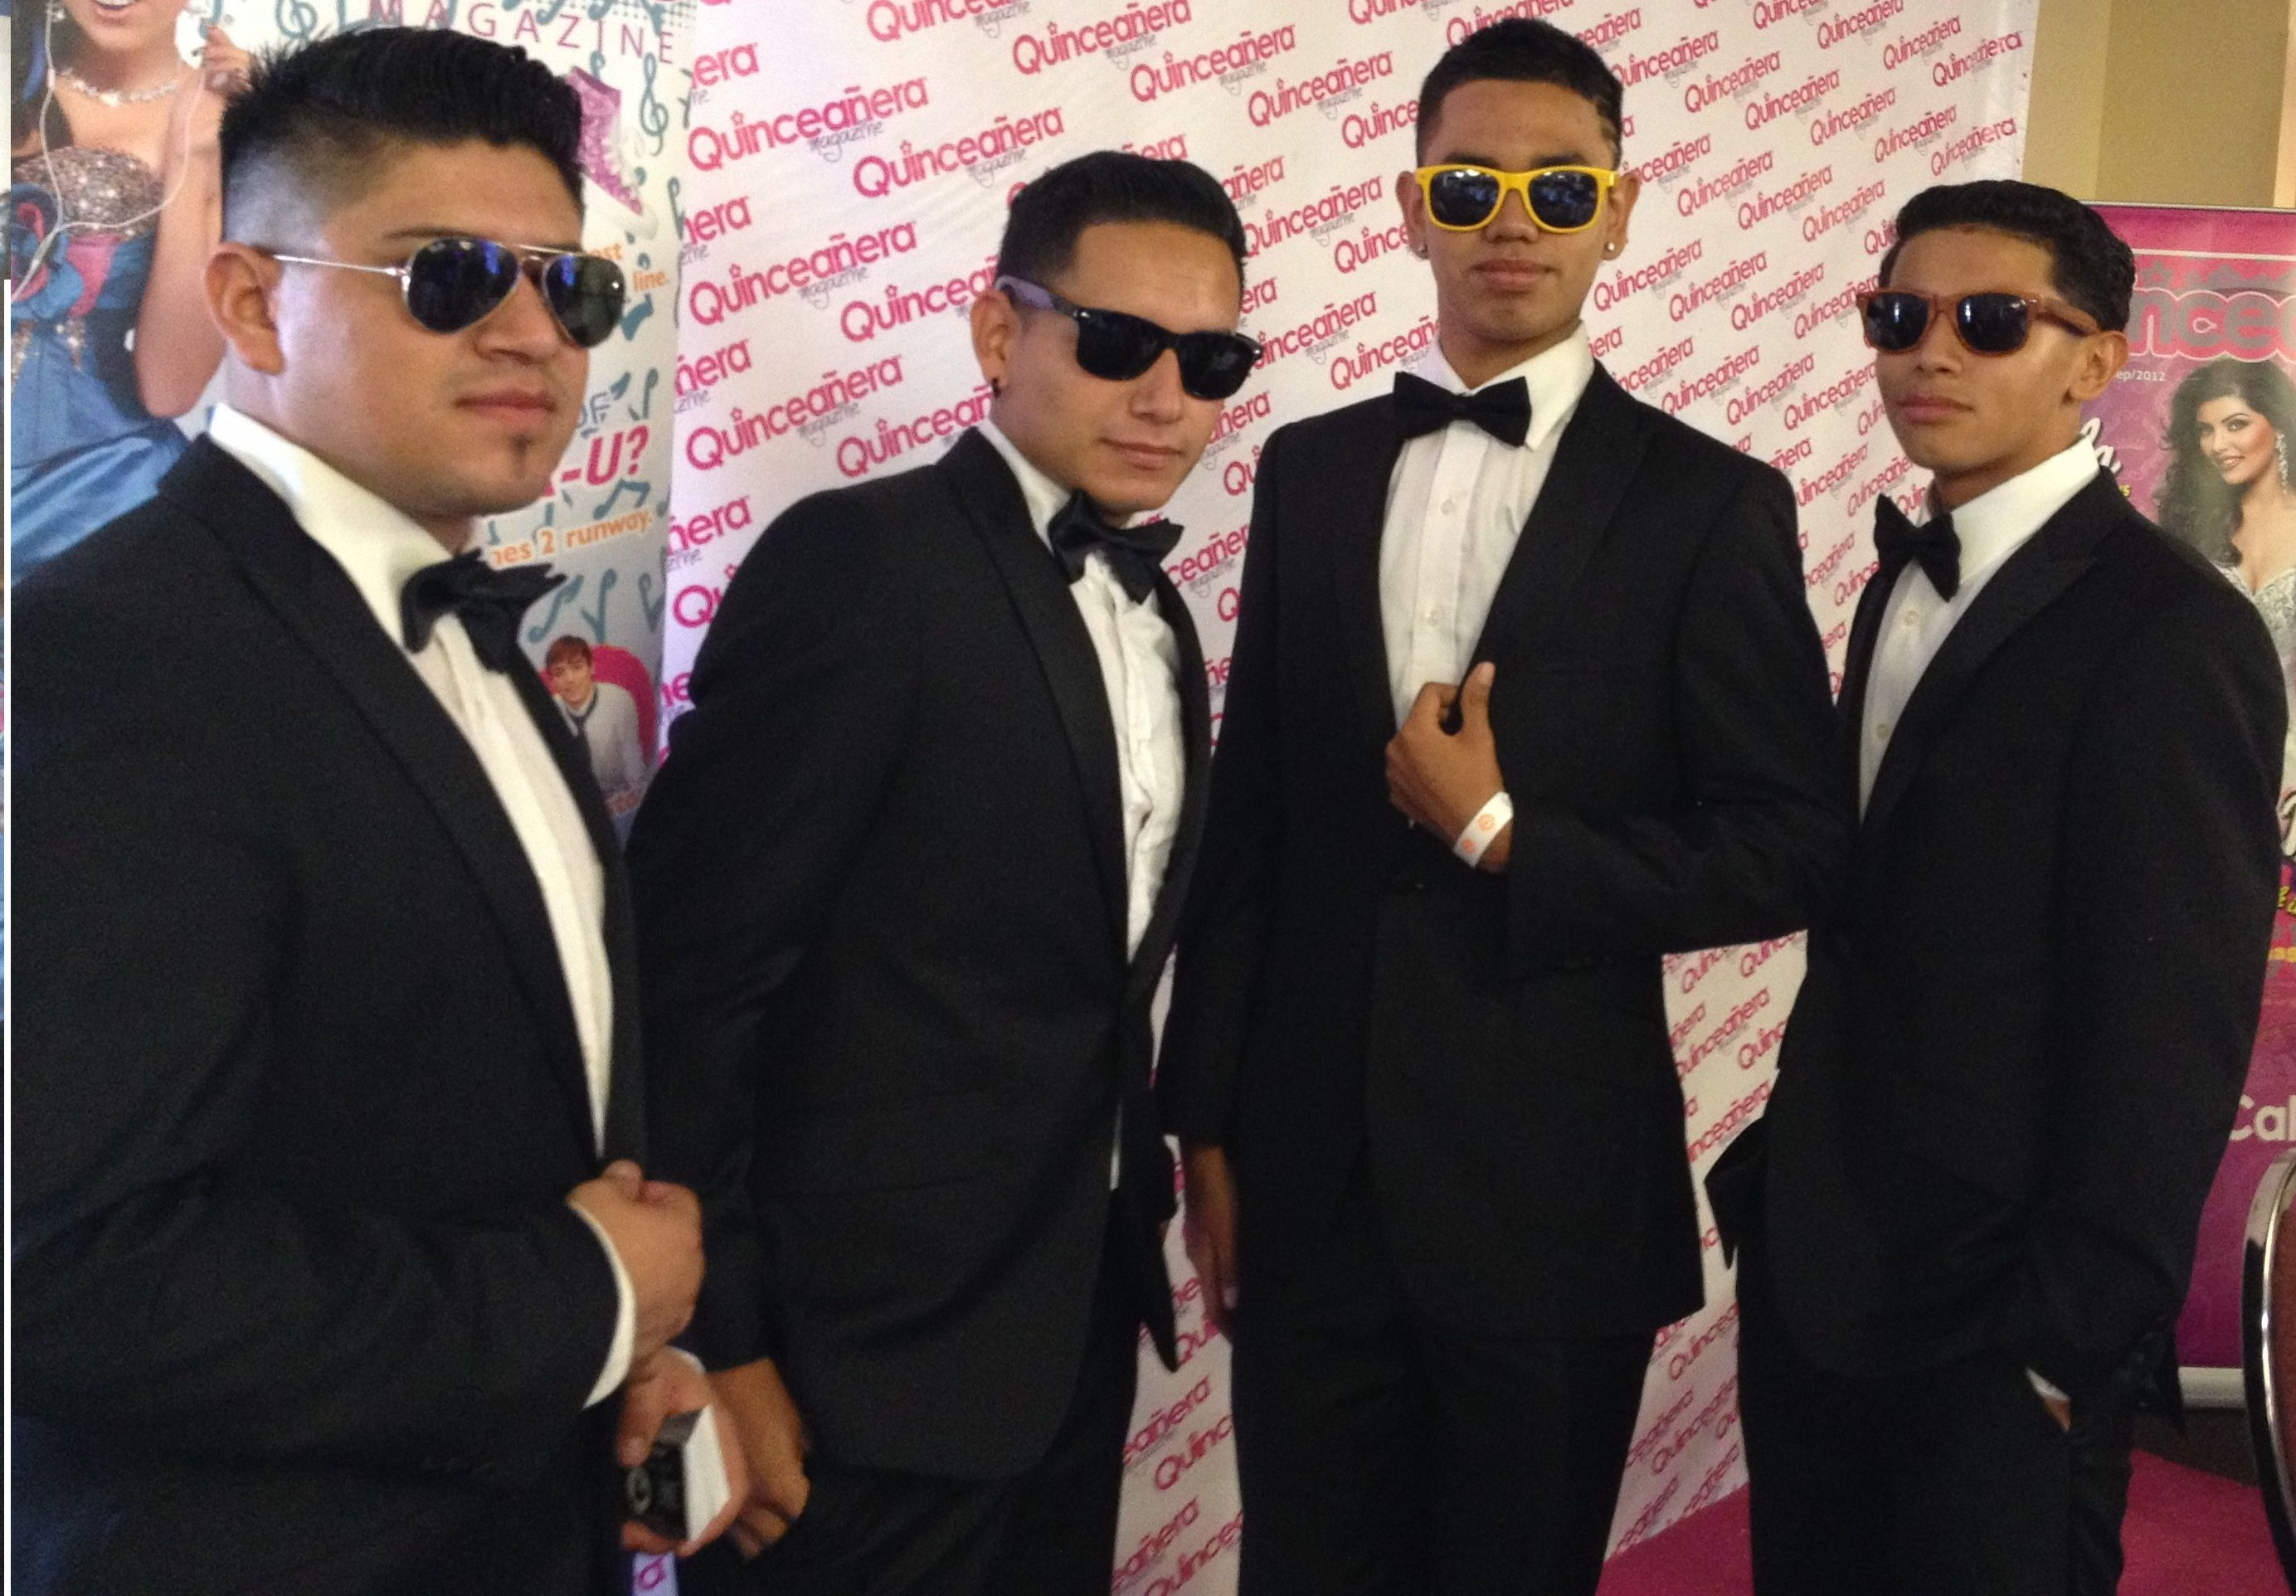 Chambelanes looking cool with sunglasses on at this ...  Chambelanes loo...